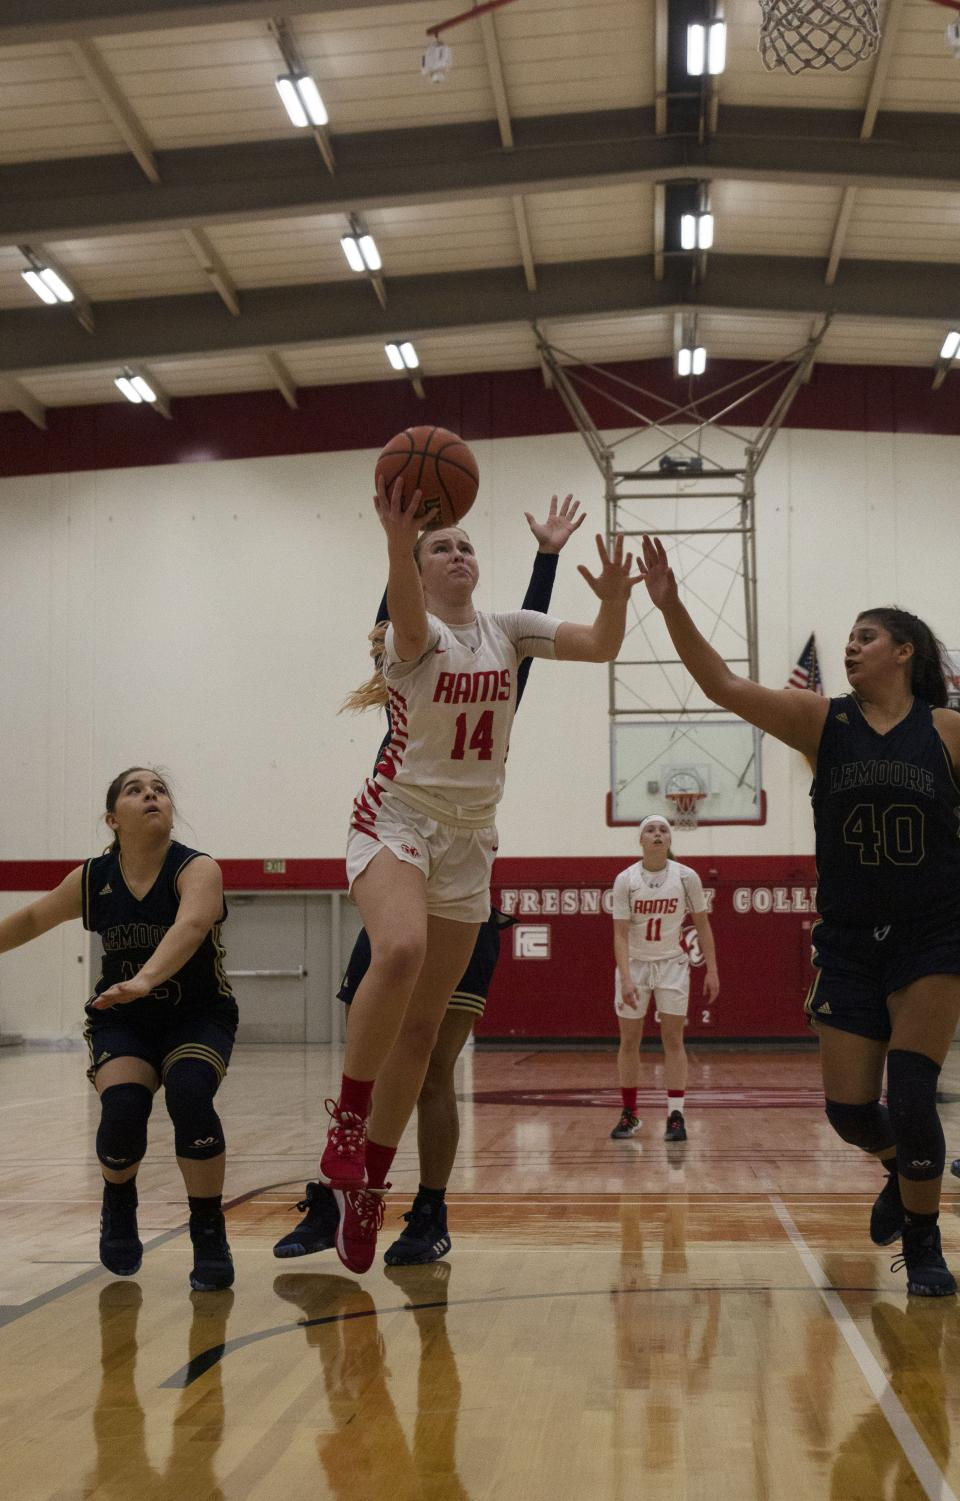 Rams' sophomore guard Shay Gibbons goes in for a shot during the Rams' Jan. 22 game against West Hills Lemoore.